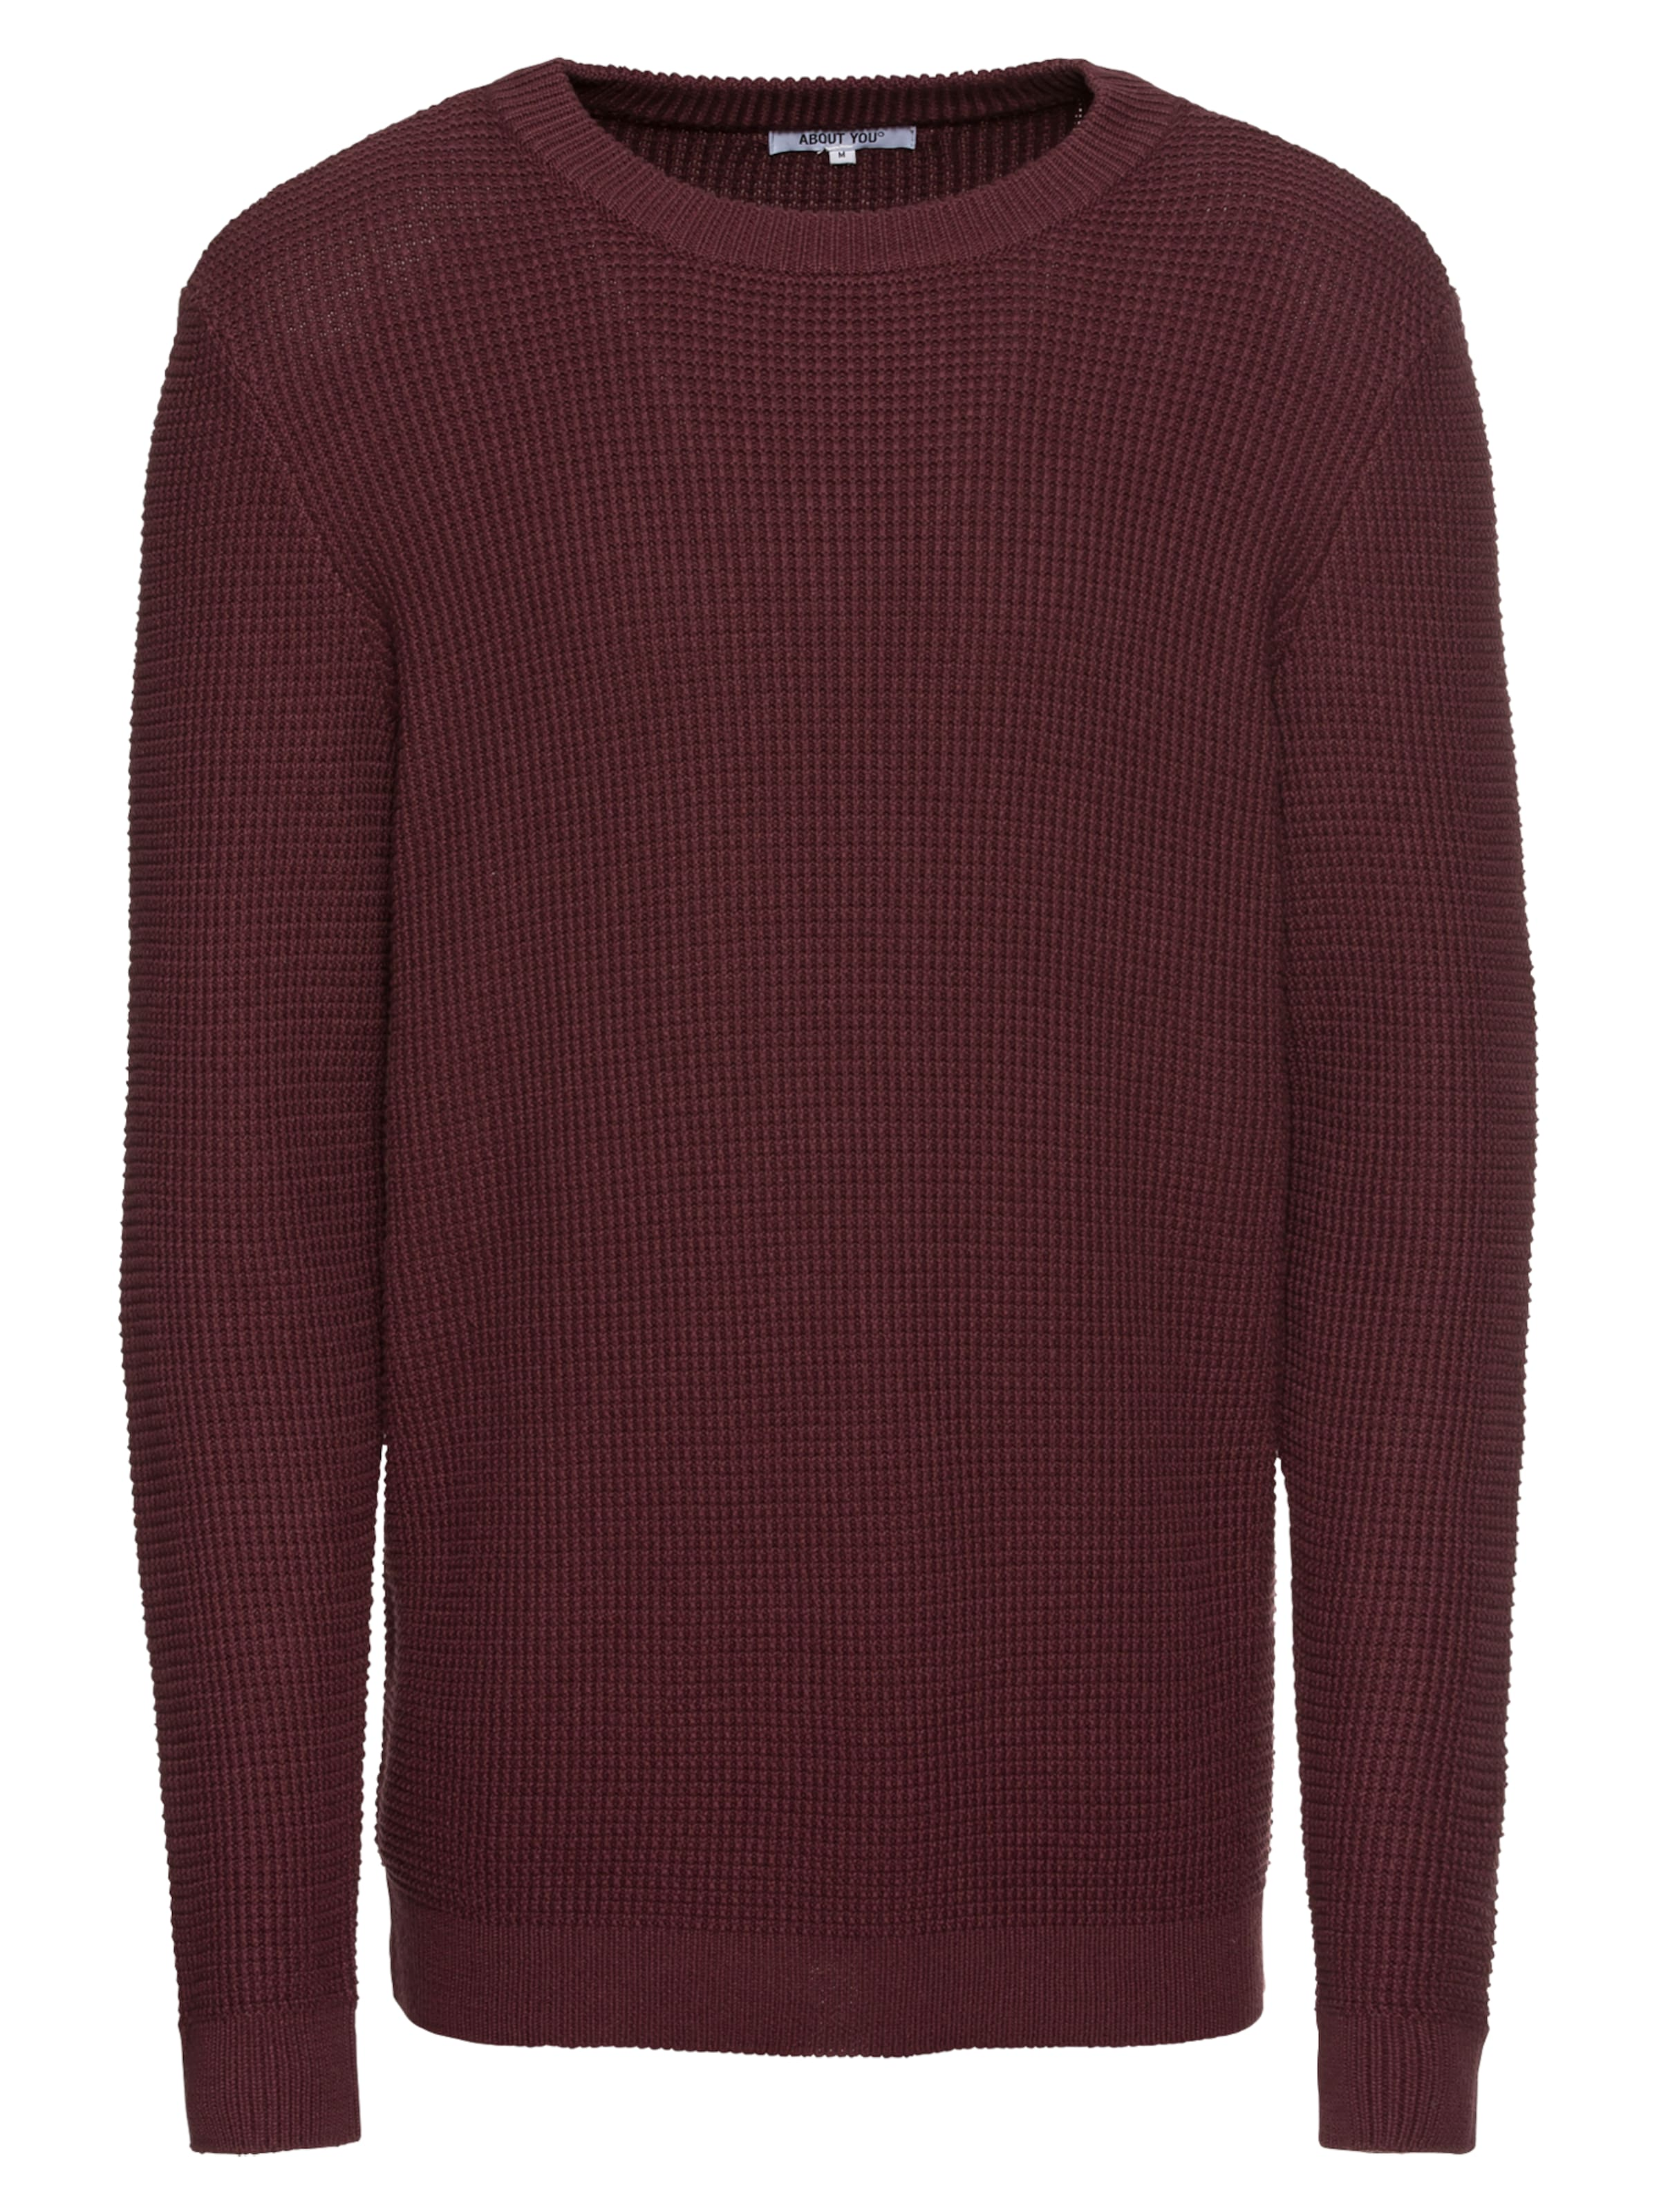 In Bordeaux You About 'benny' Pullover uFKJTl31c